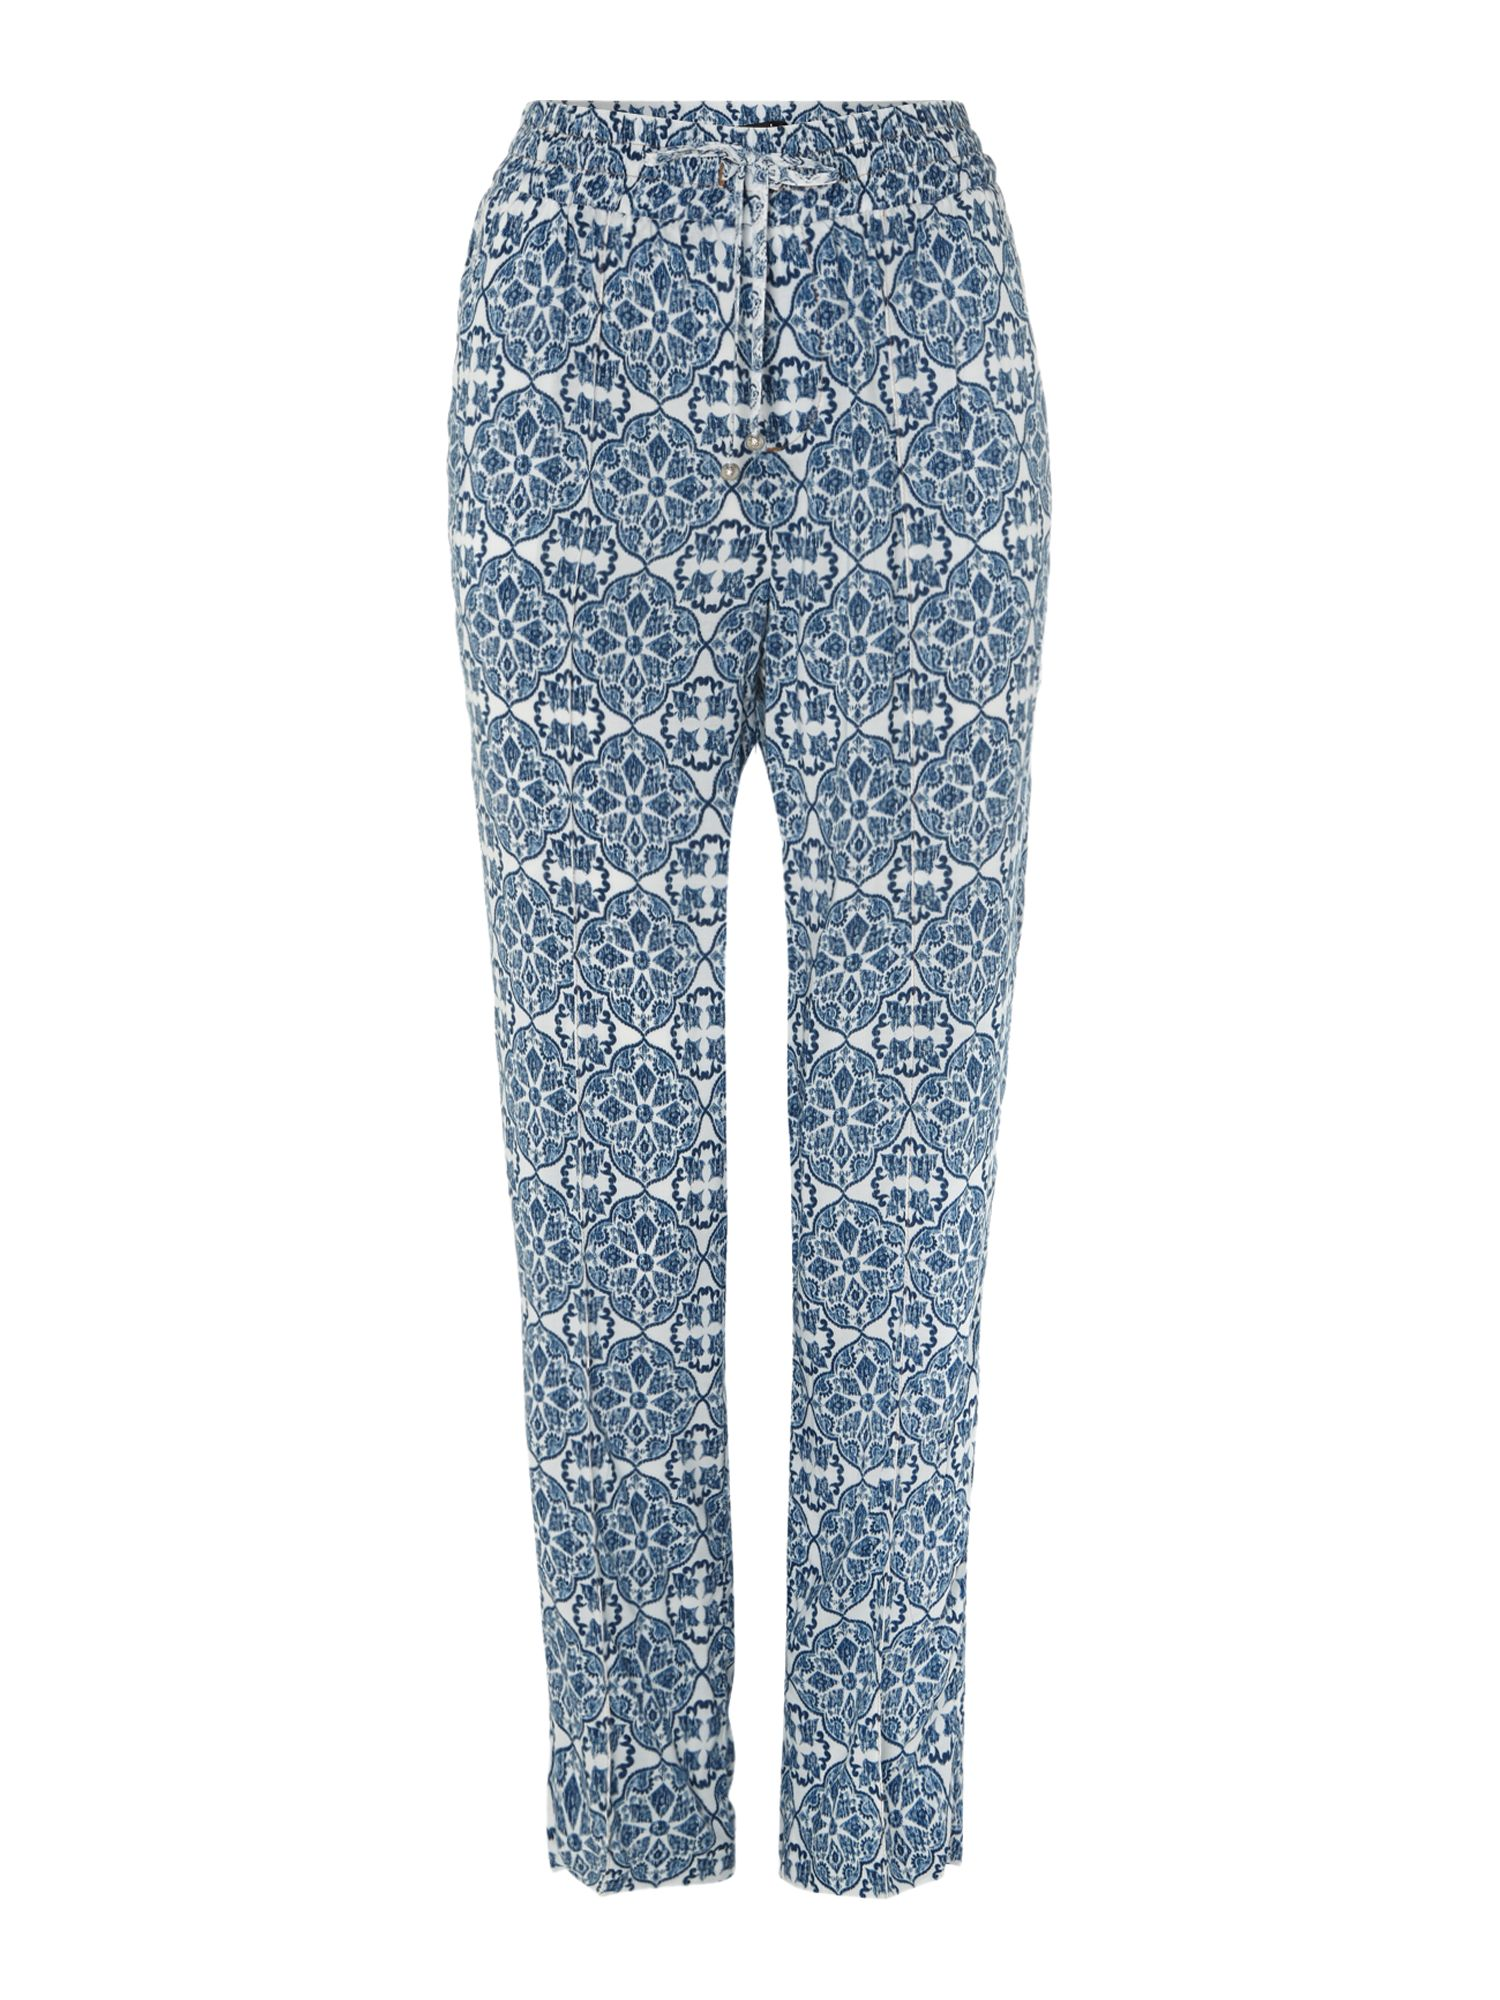 Relaxed fit printed trouser